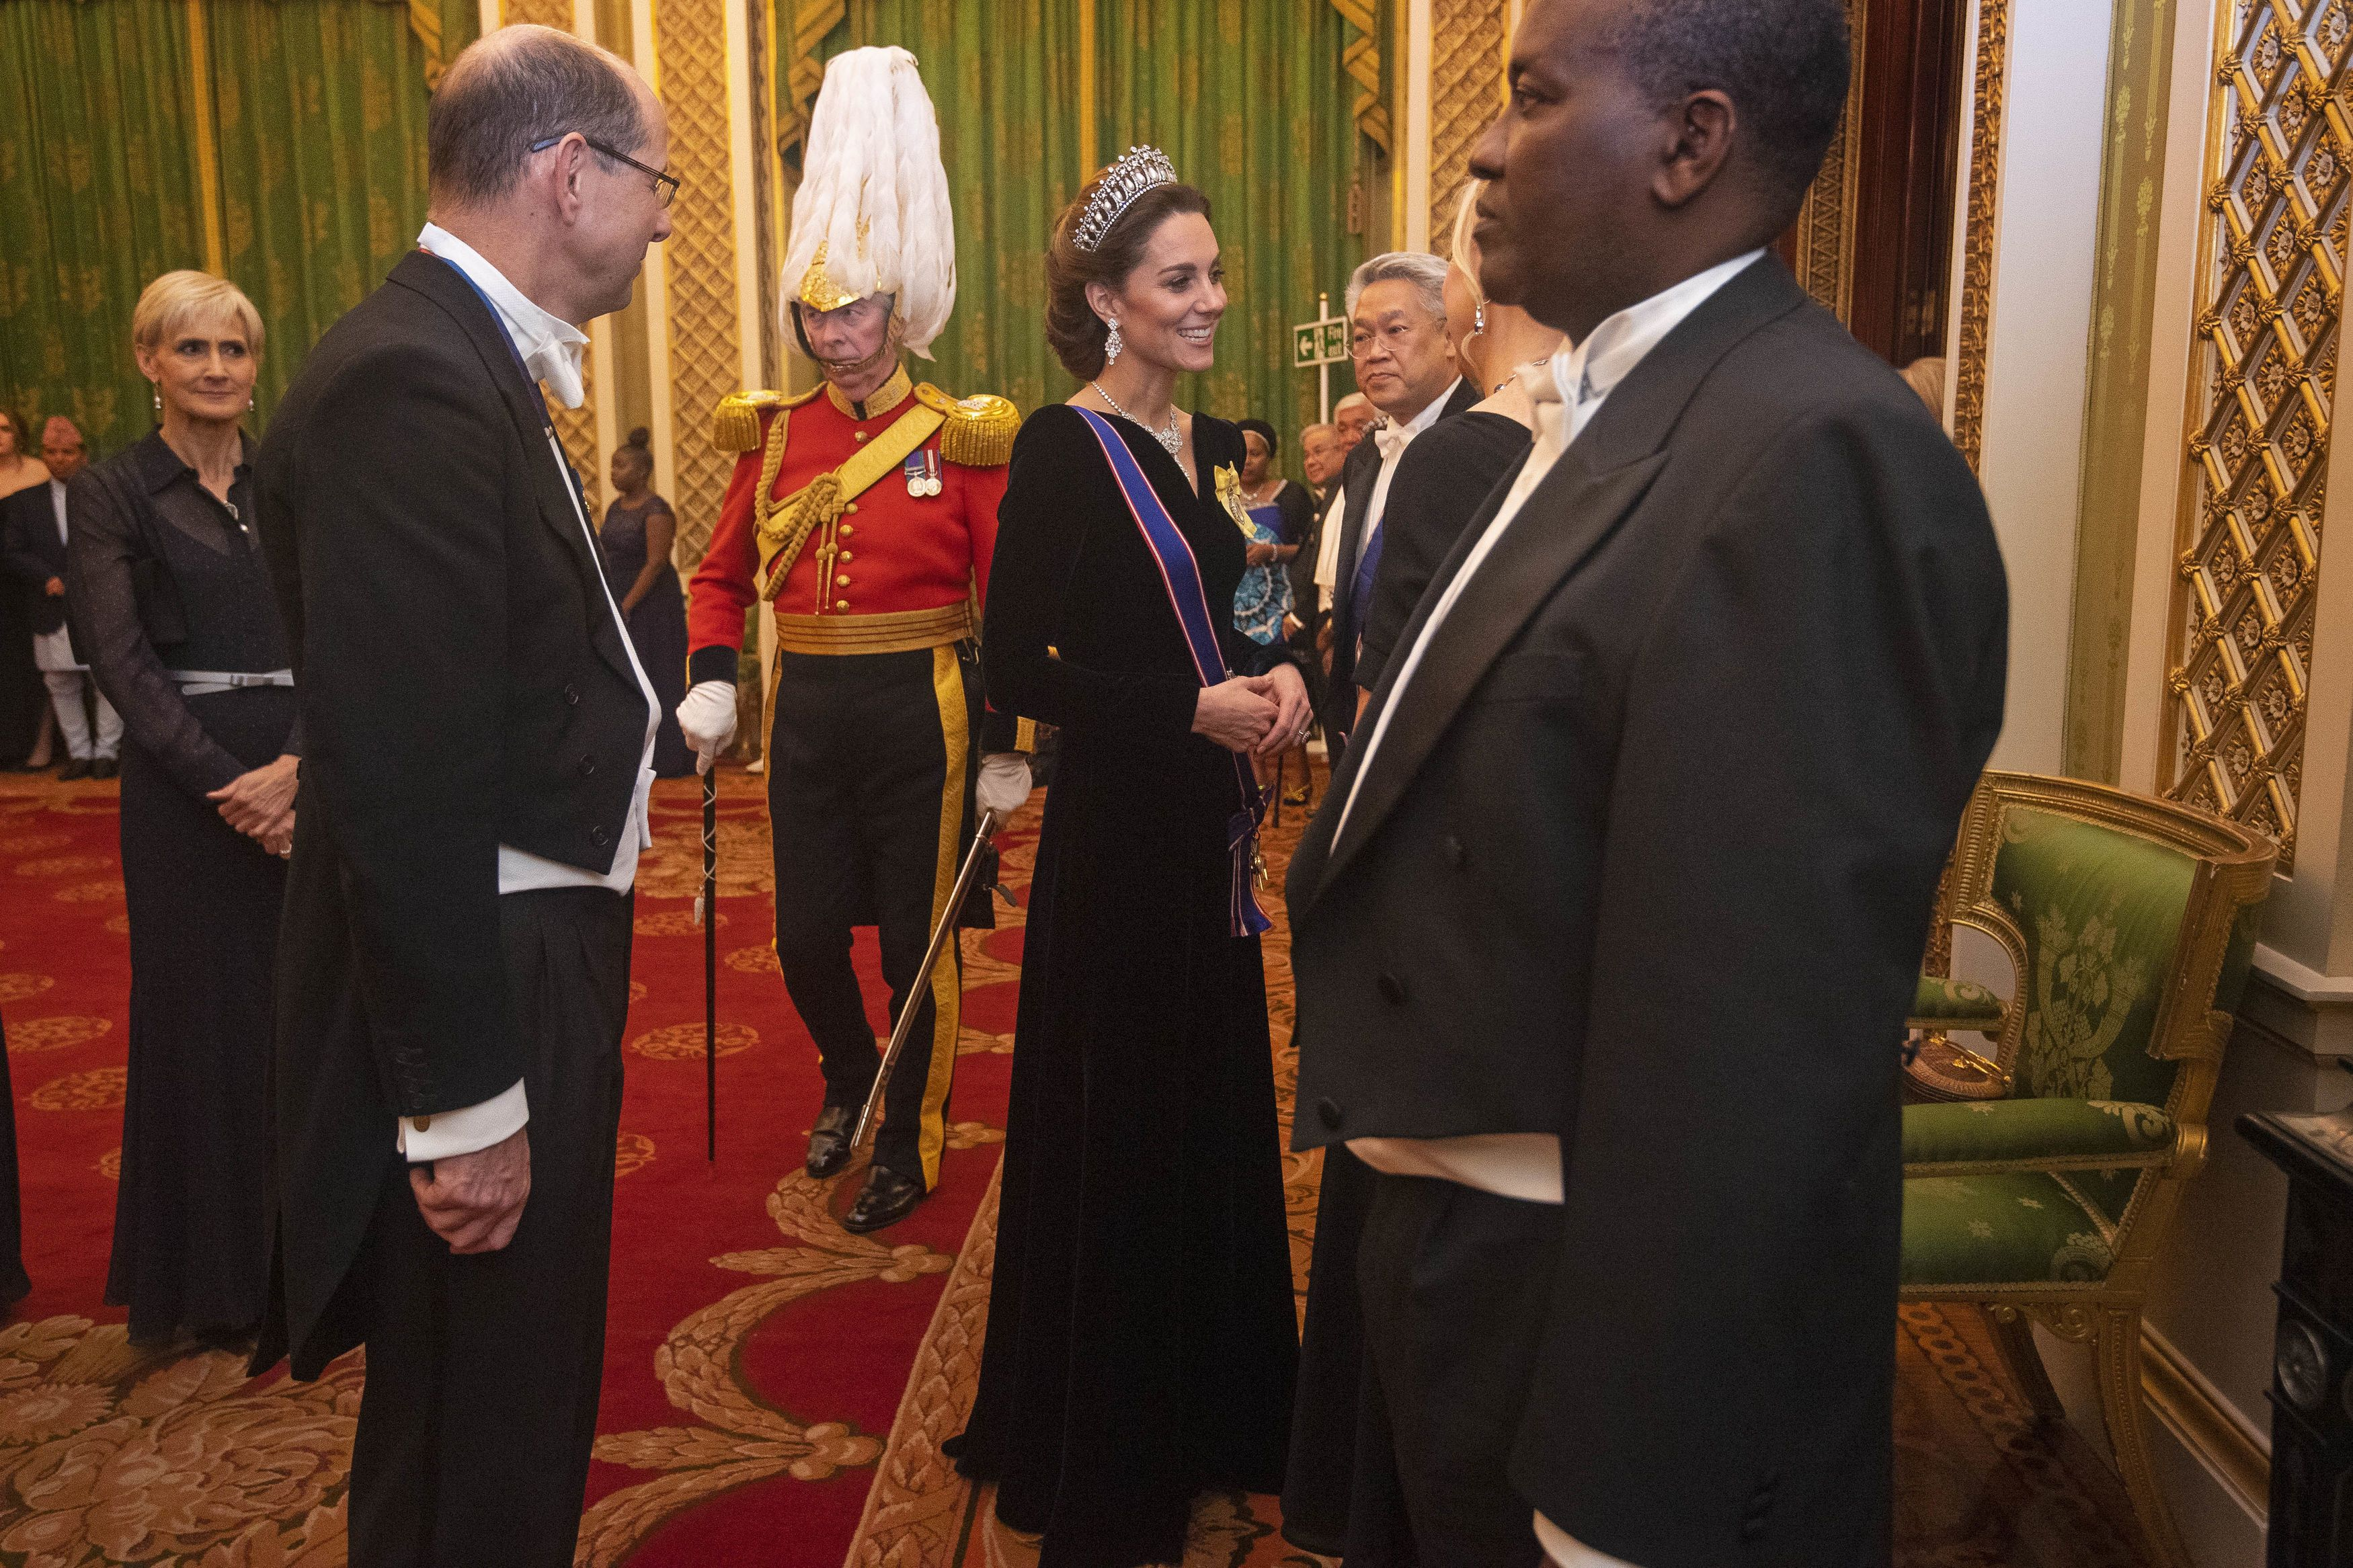 See All The Best Photos of Buckingham Palace's Annual Diplomatic Corps Reception